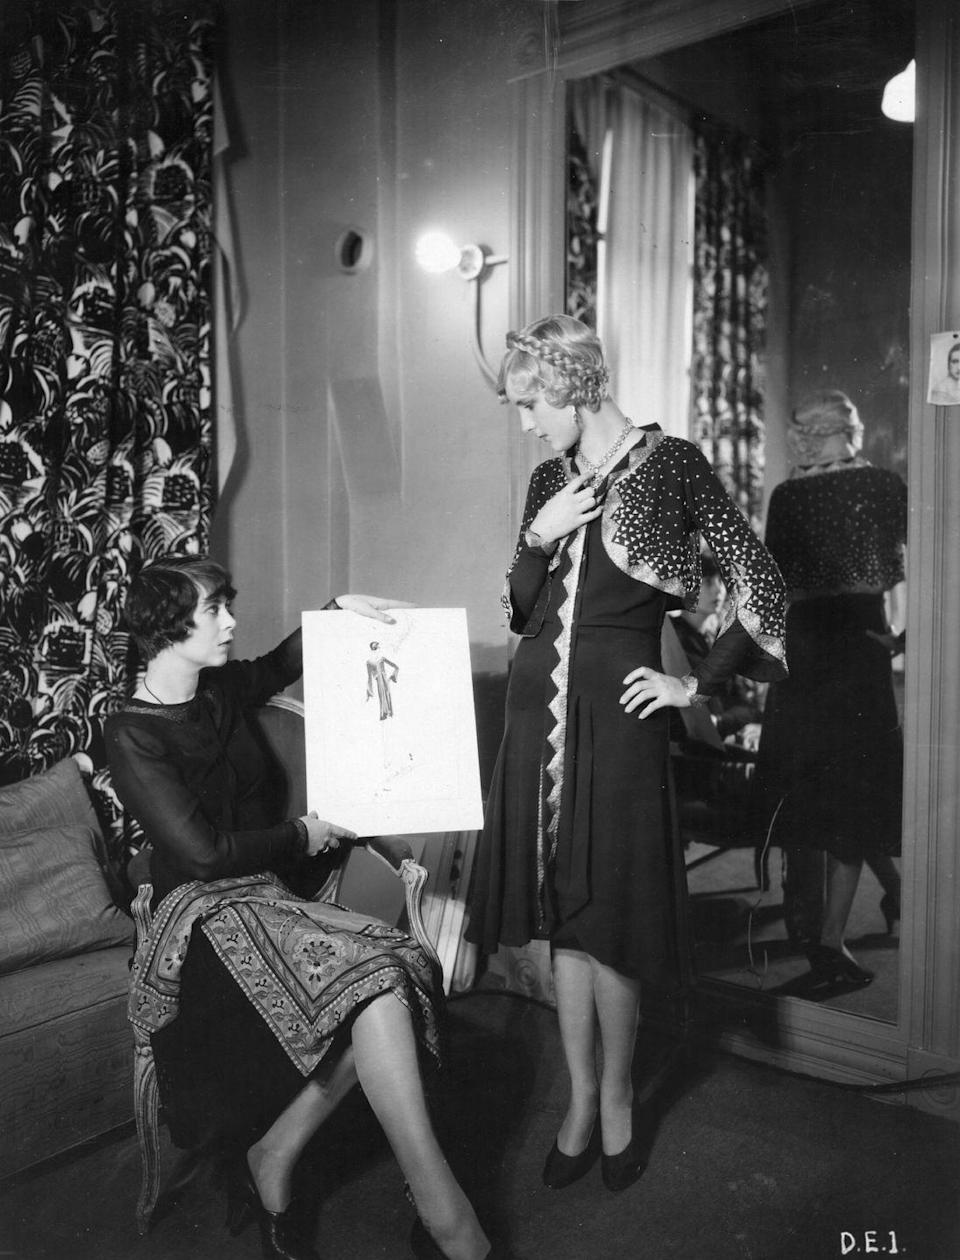 <p>The 1930s were a complex time in fashion. With America in the Great Depression, people weren't spending as much money on clothing. For those who weren't struggling financially, a new host of patterns and textures was introduced, including a more diverse wardrobe like ... wait for it ... pants!</p>